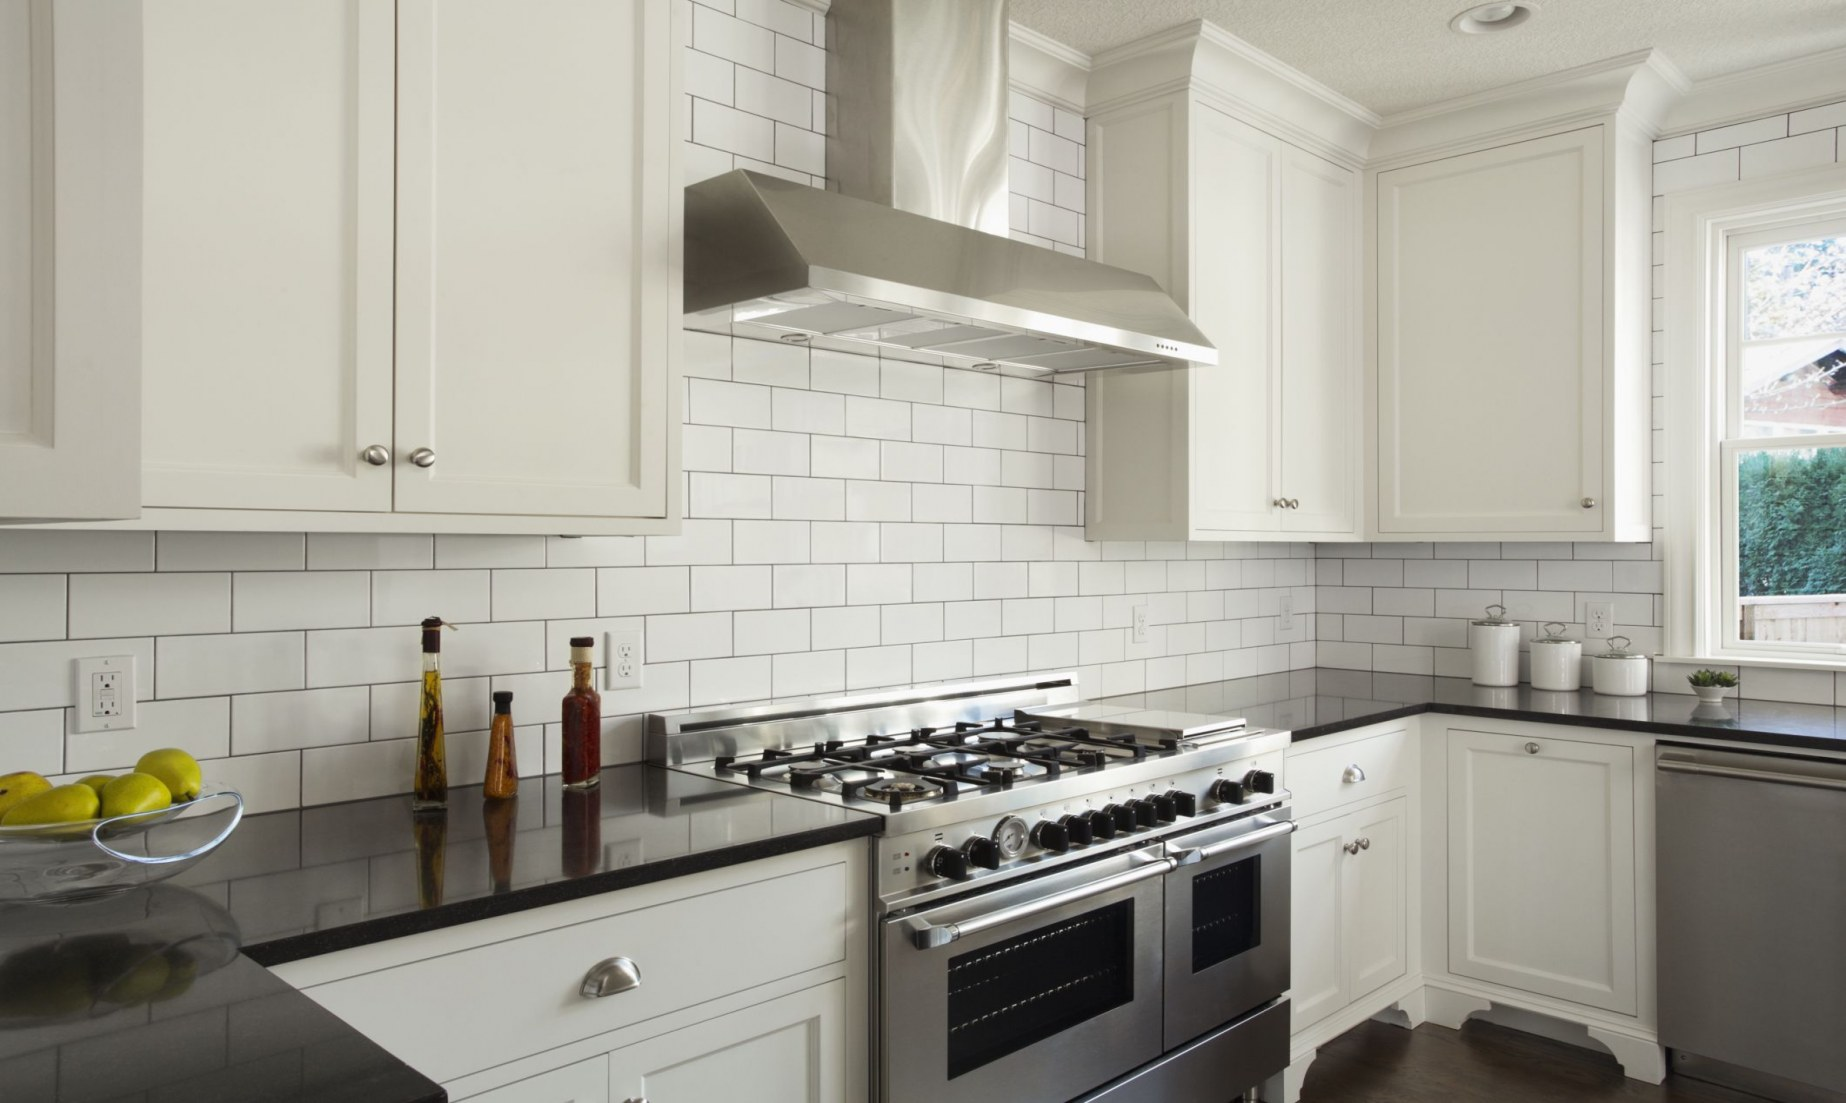 herringbone subway tile backsplash how subway tile can effectively work in modern rooms of herringbone subway tile backsplash 1